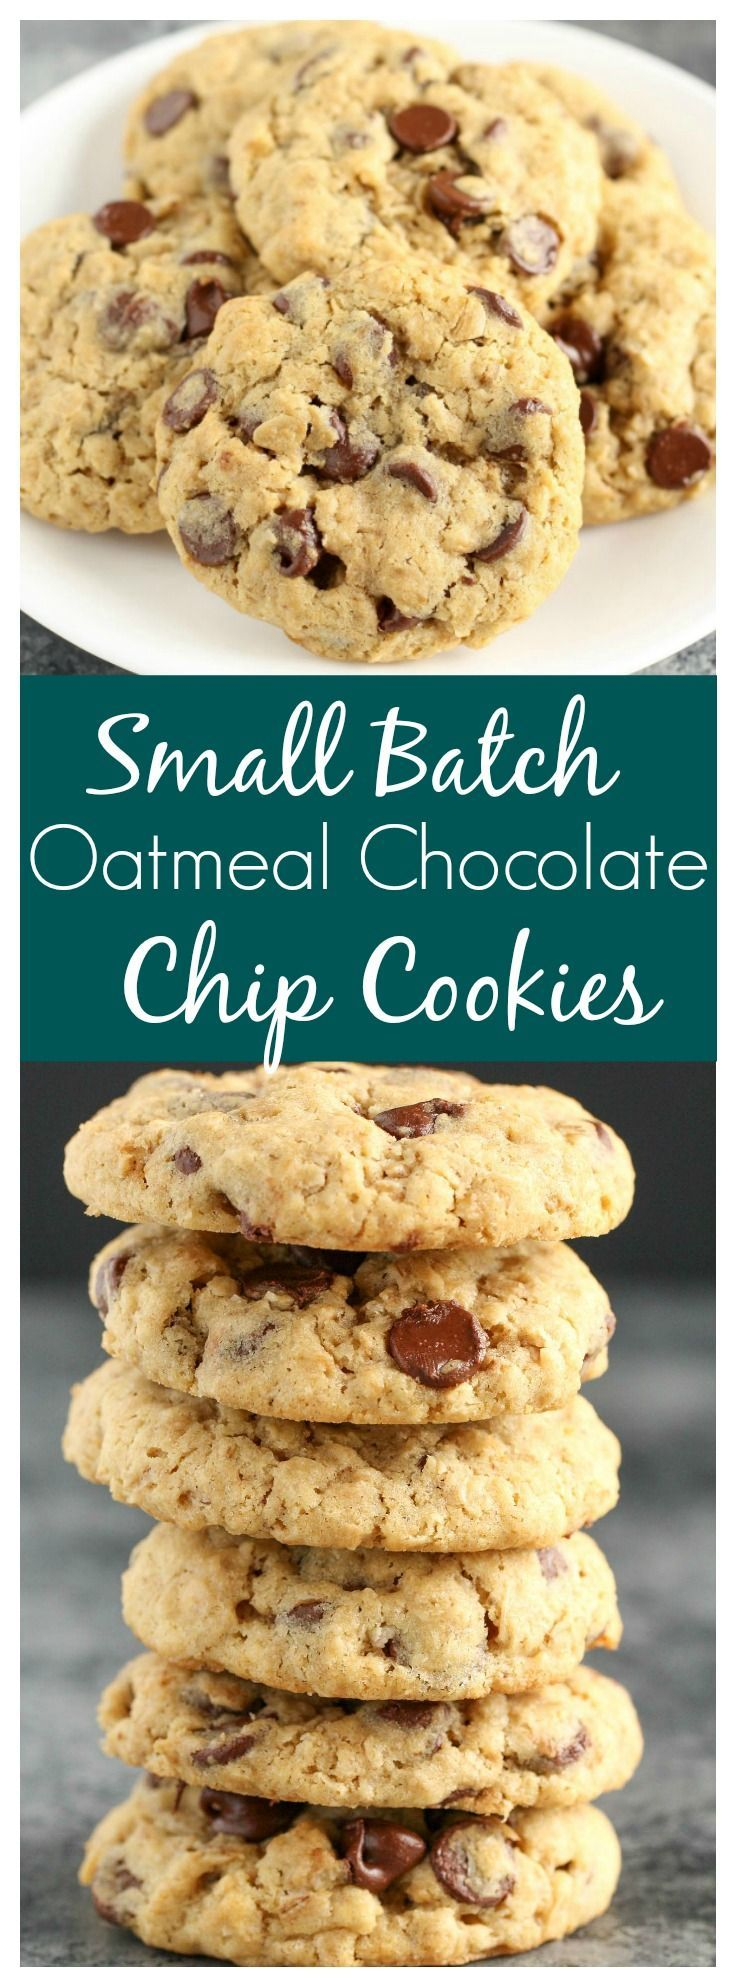 Easy One Bowl Chocolate Chip Cookies